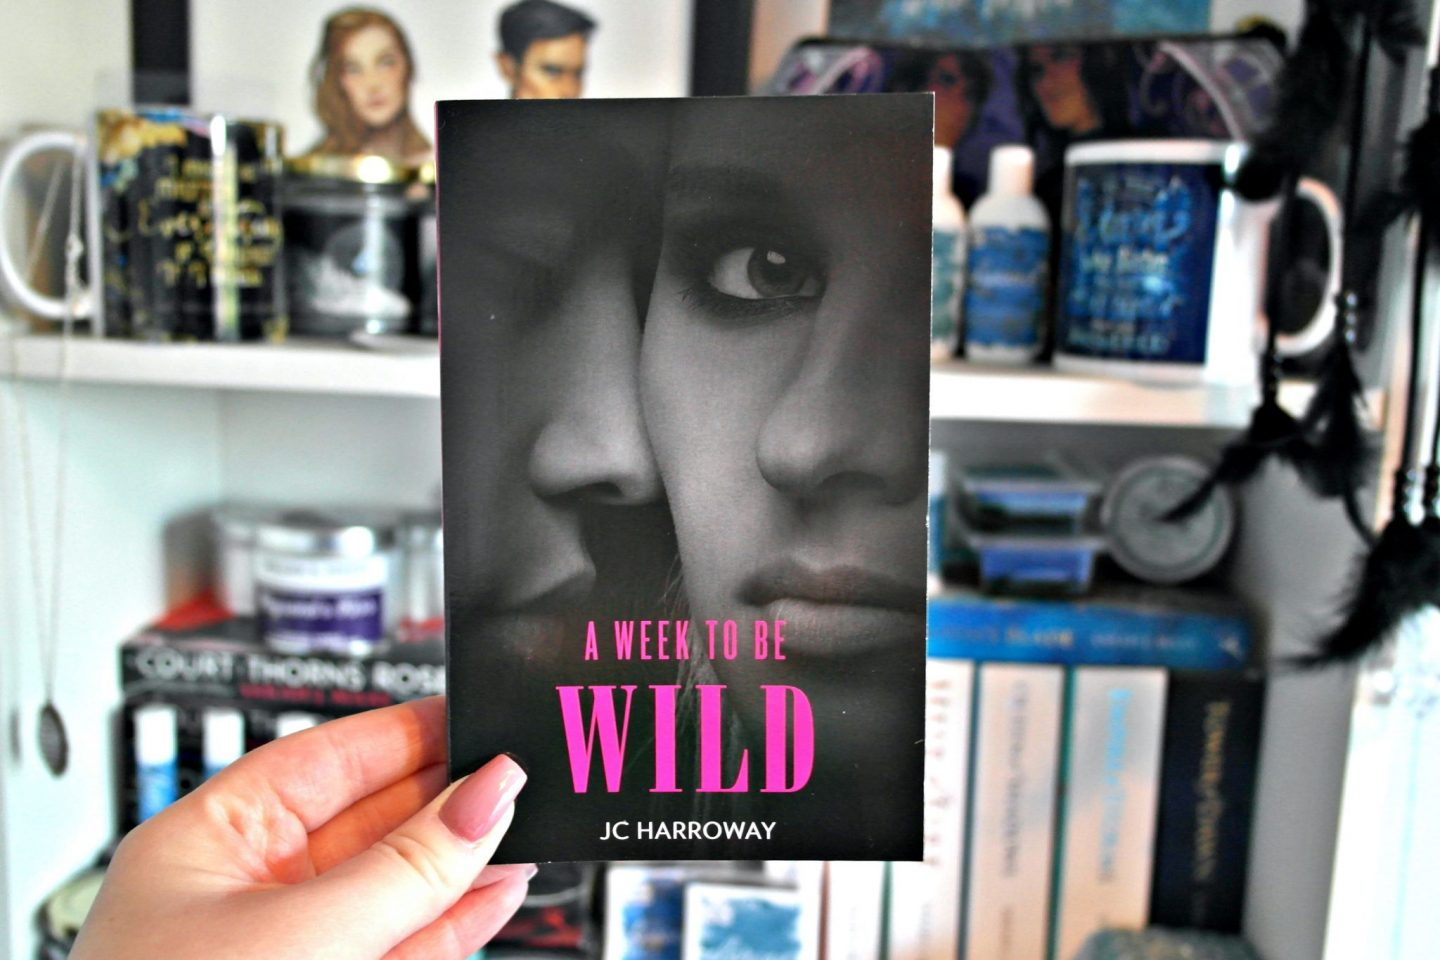 Review: A Week to be Wild By JC Harroway: Mills & Boon Blog Tour